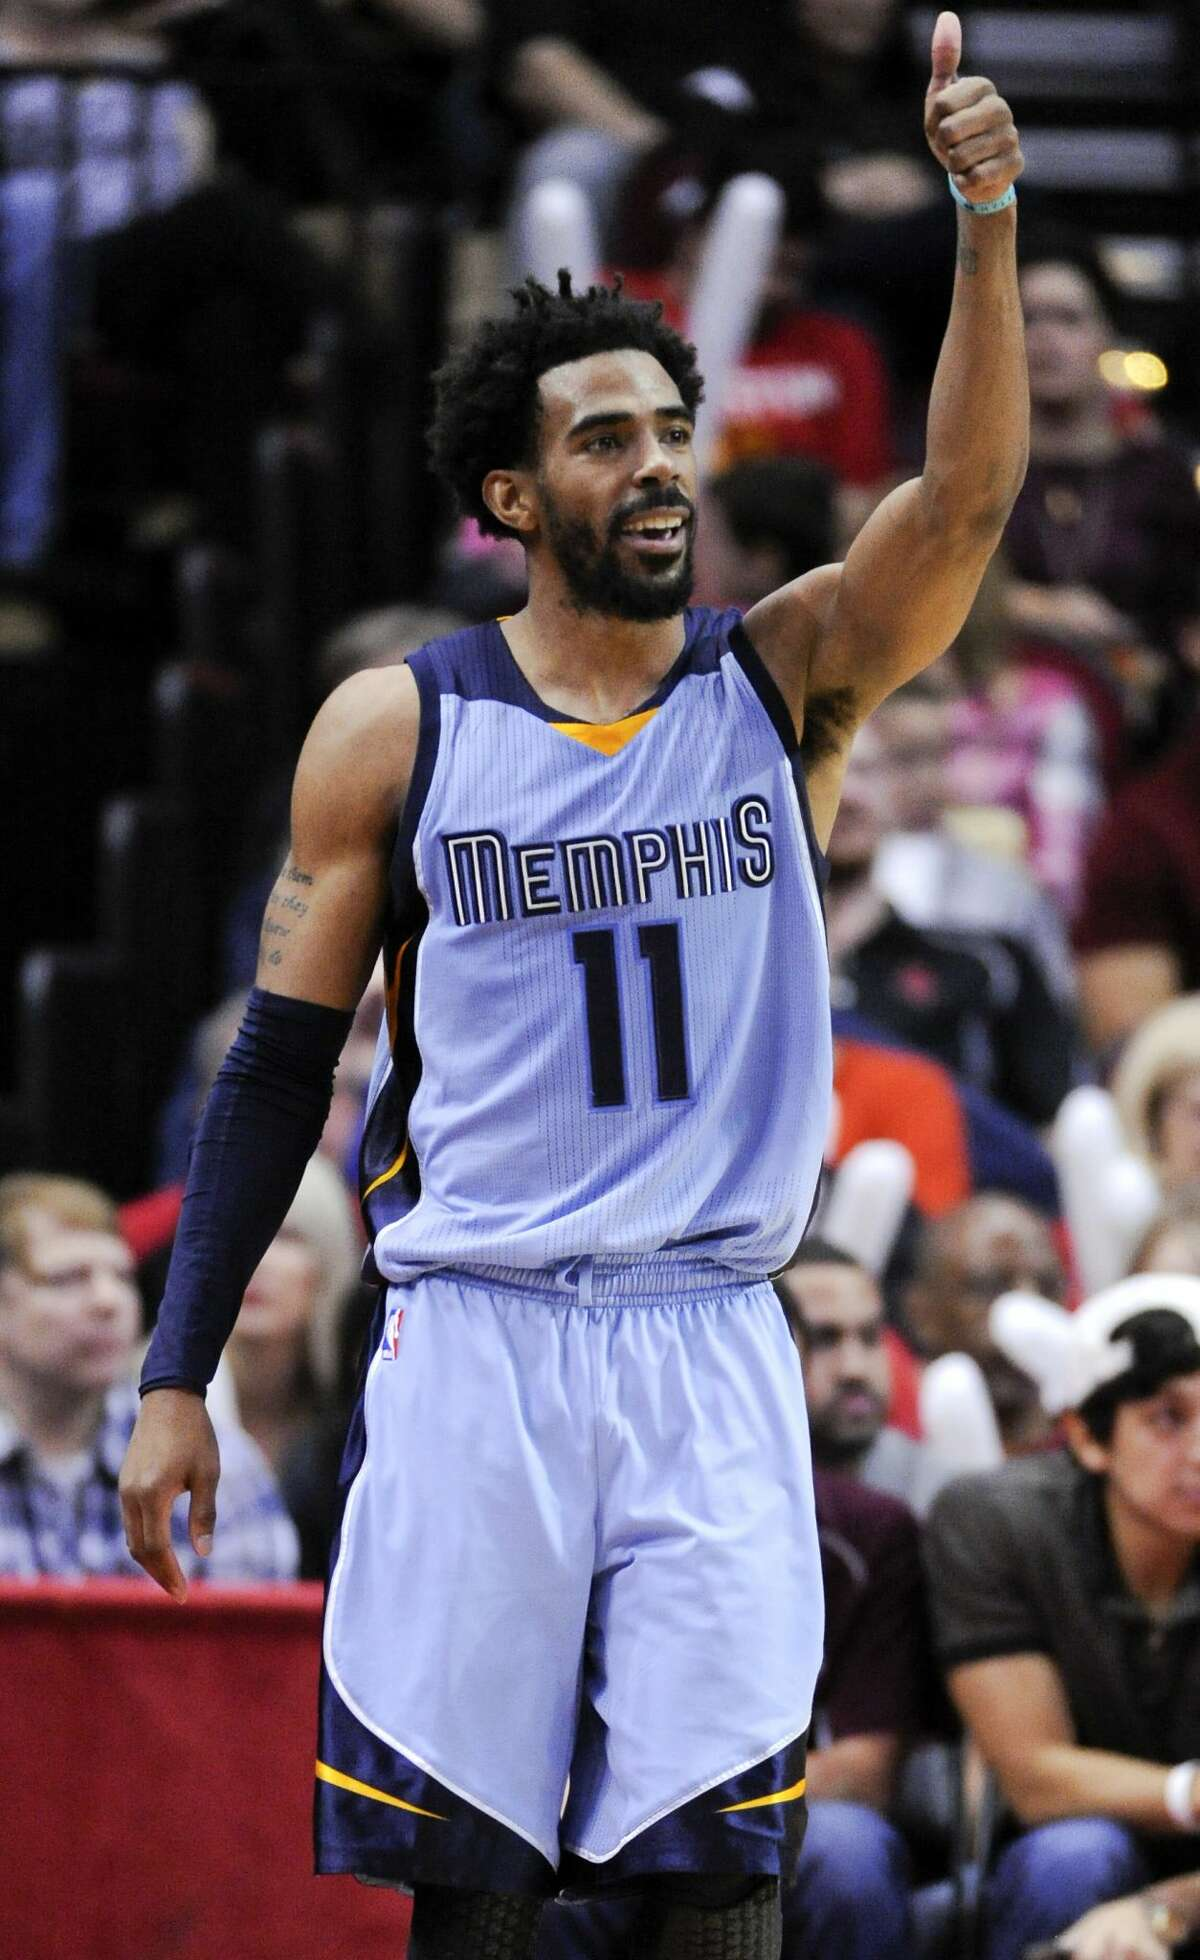 Memphis Grizzlies guard Mike Conley (11) reacts after making a 3-pointer in the second half of an NBA basketball game against the Houston Rockets, Friday, Jan. 13, 2017, in Houston. Memphis won the game, 110-105. (AP Photo/Eric Christian Smith)